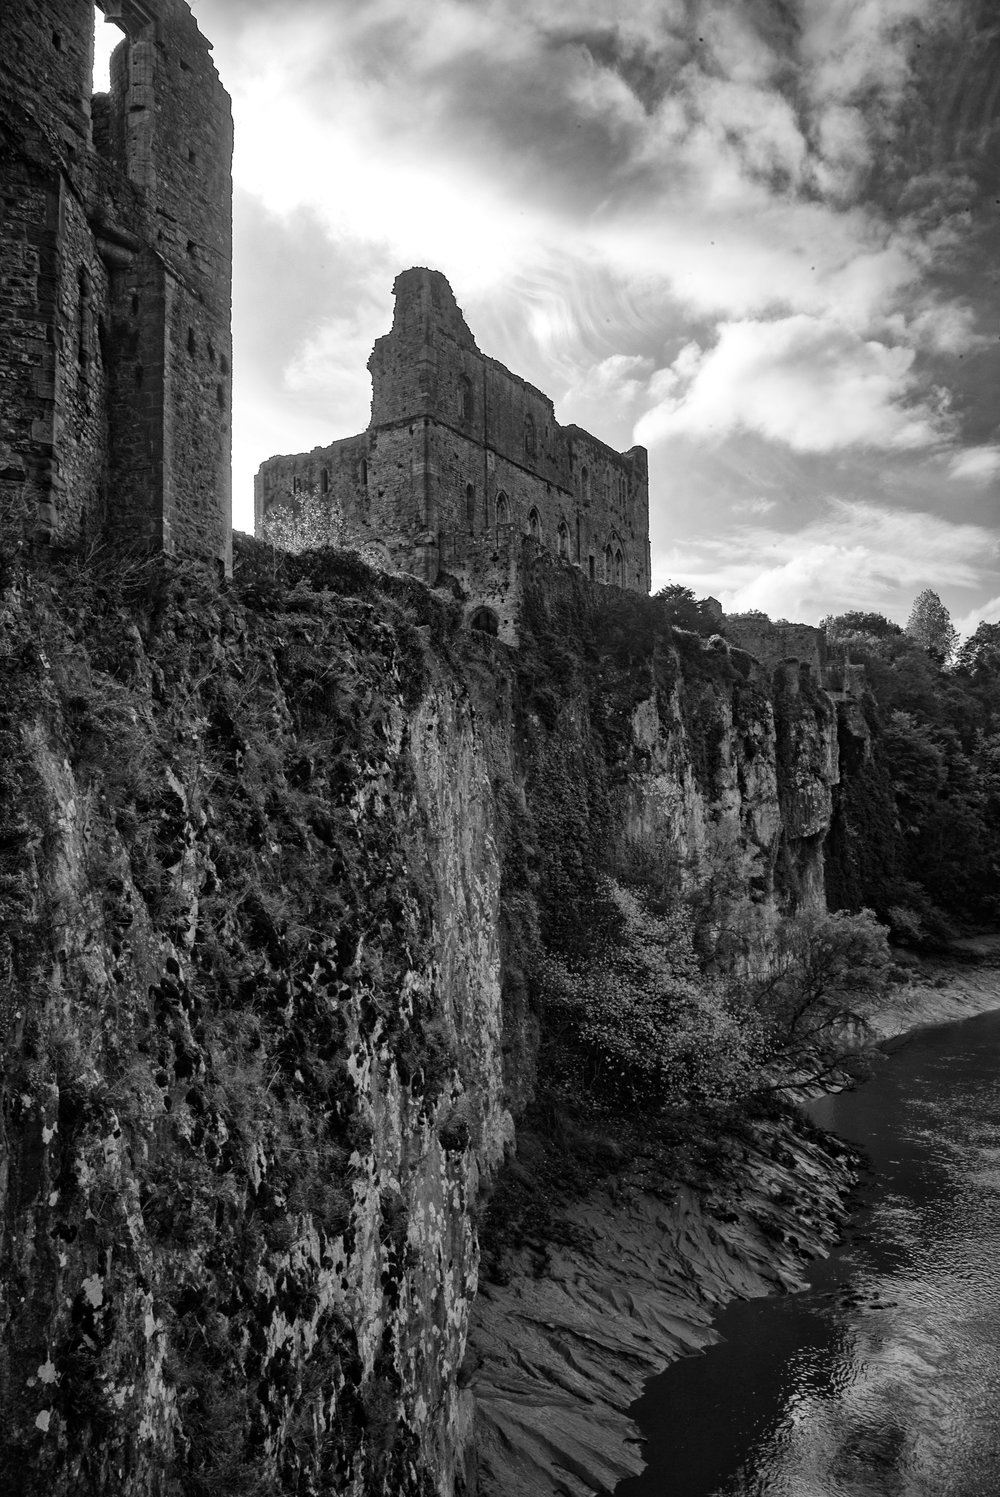 Chepstow Castle on a beautiful bend of the River Wye, brooding over England on the opposite bank.